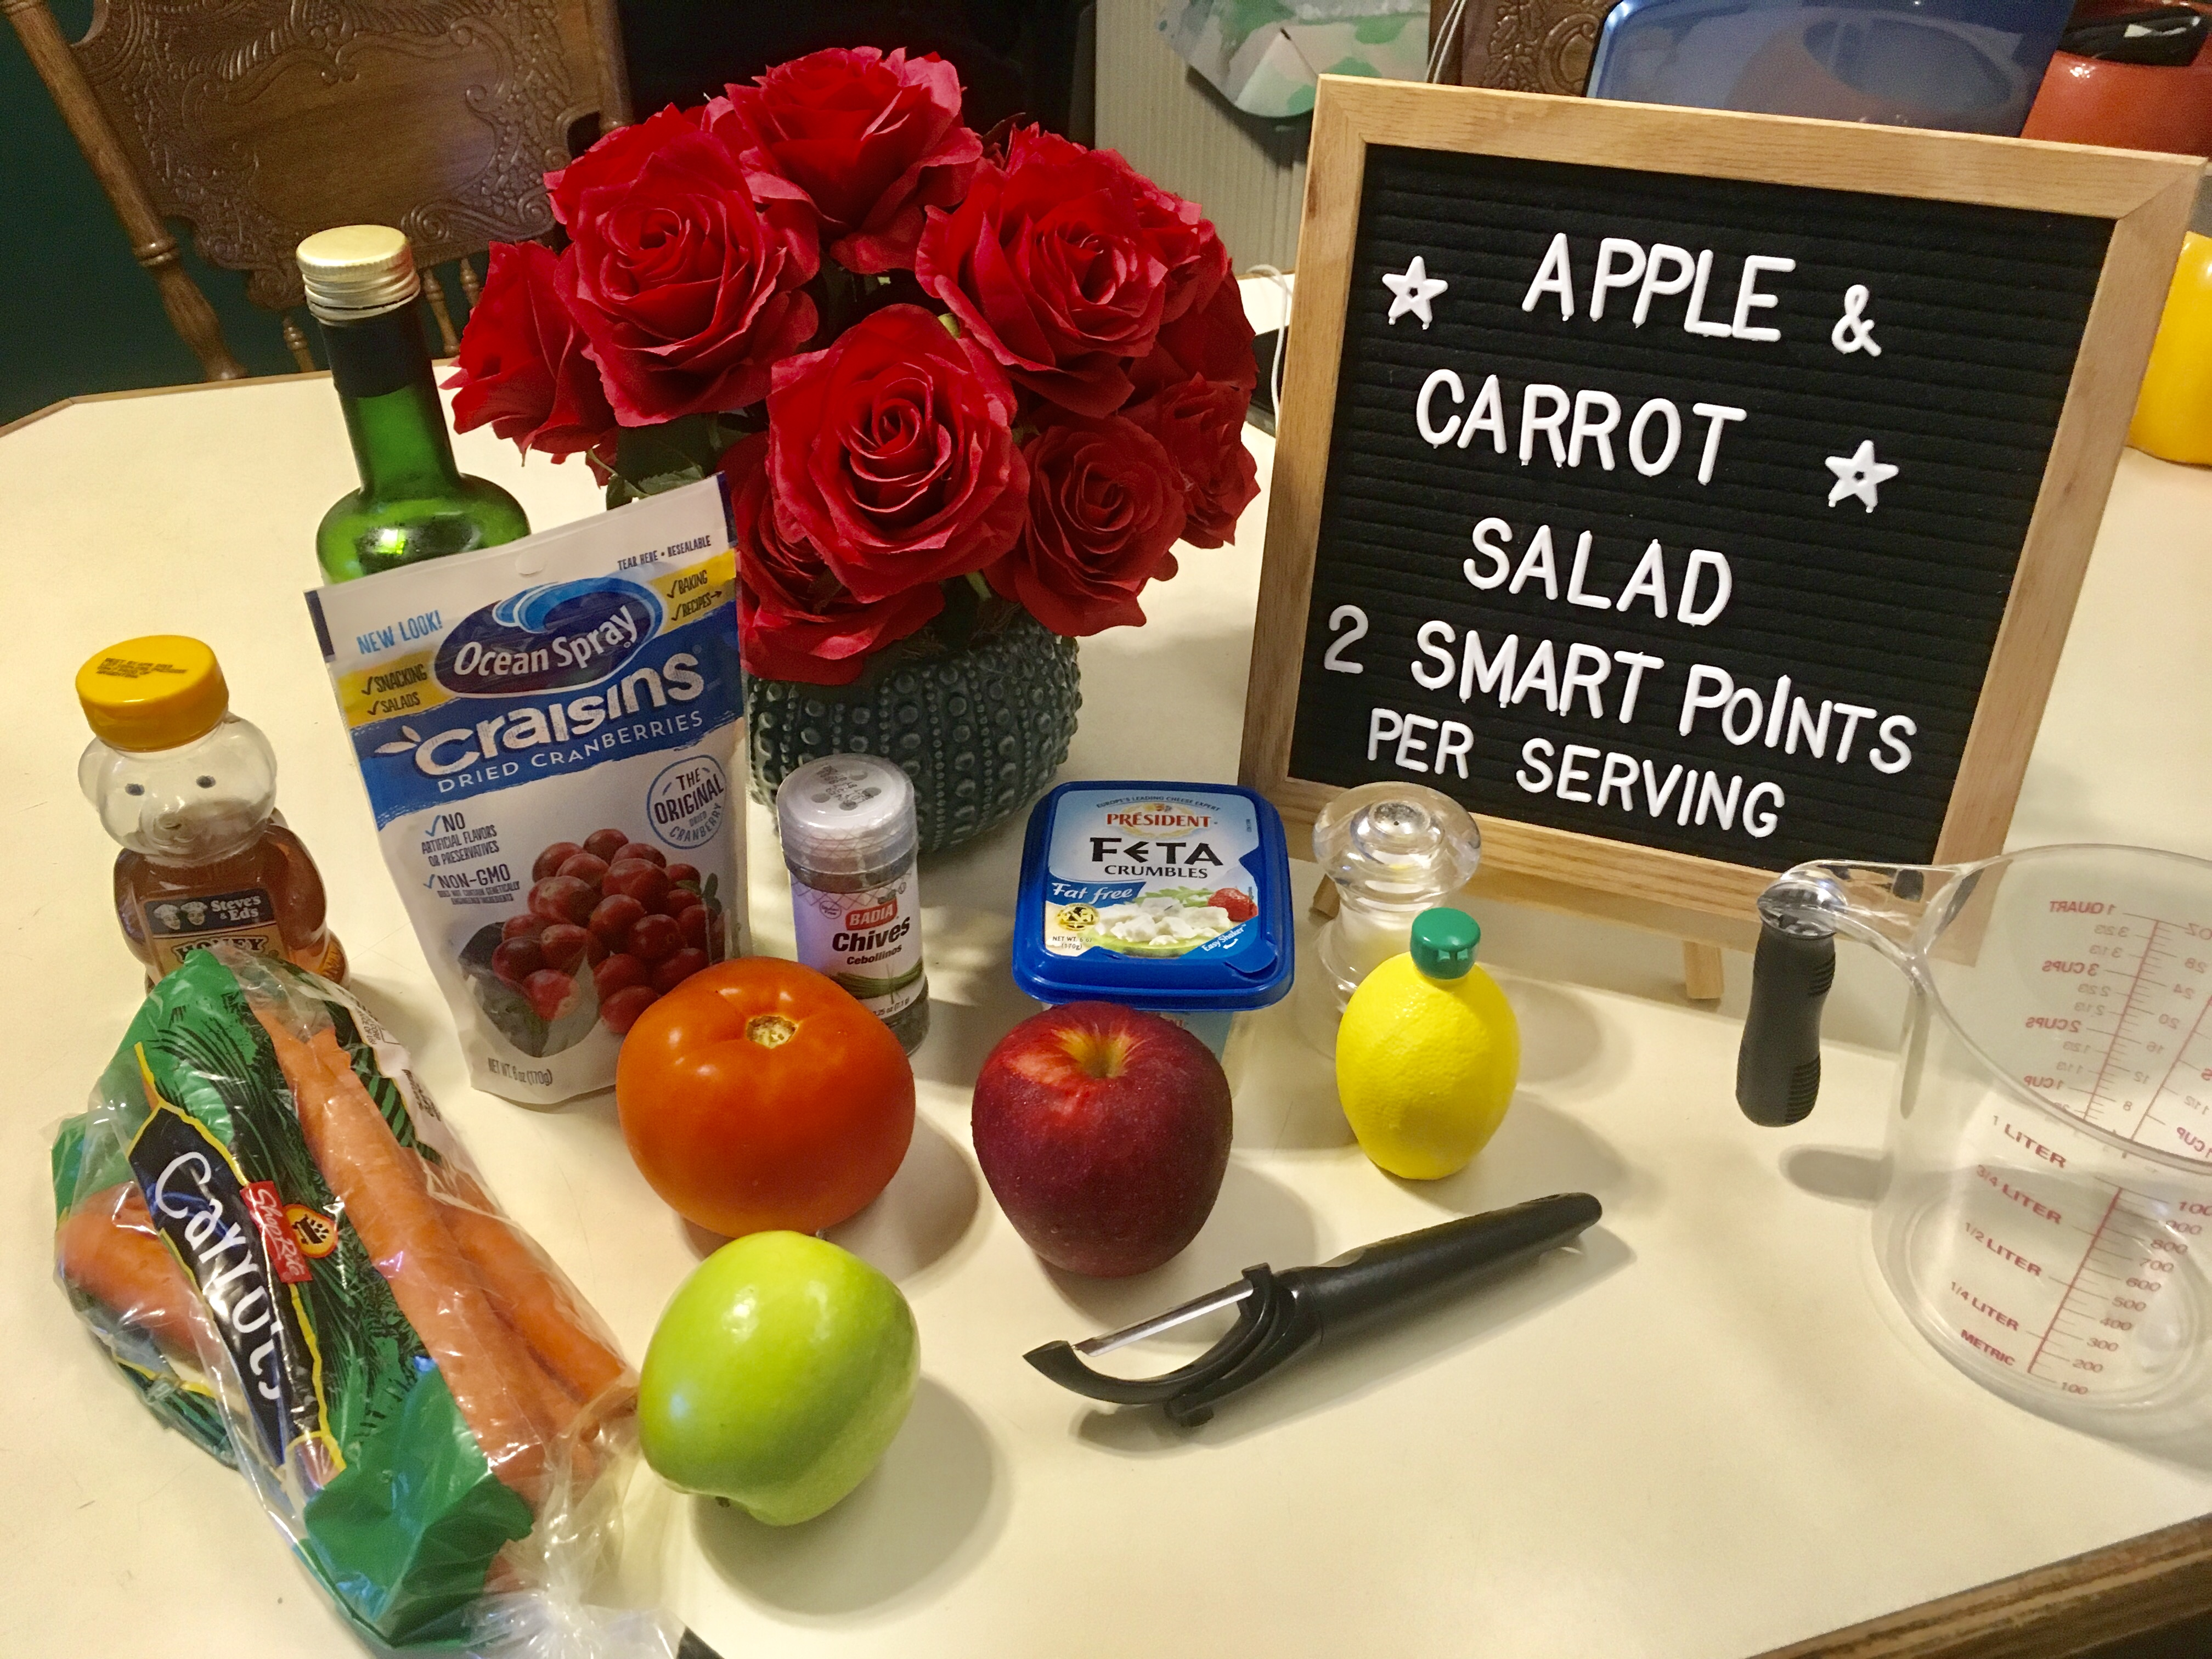 Apple and Carrot Salad just 2 smart points per serving